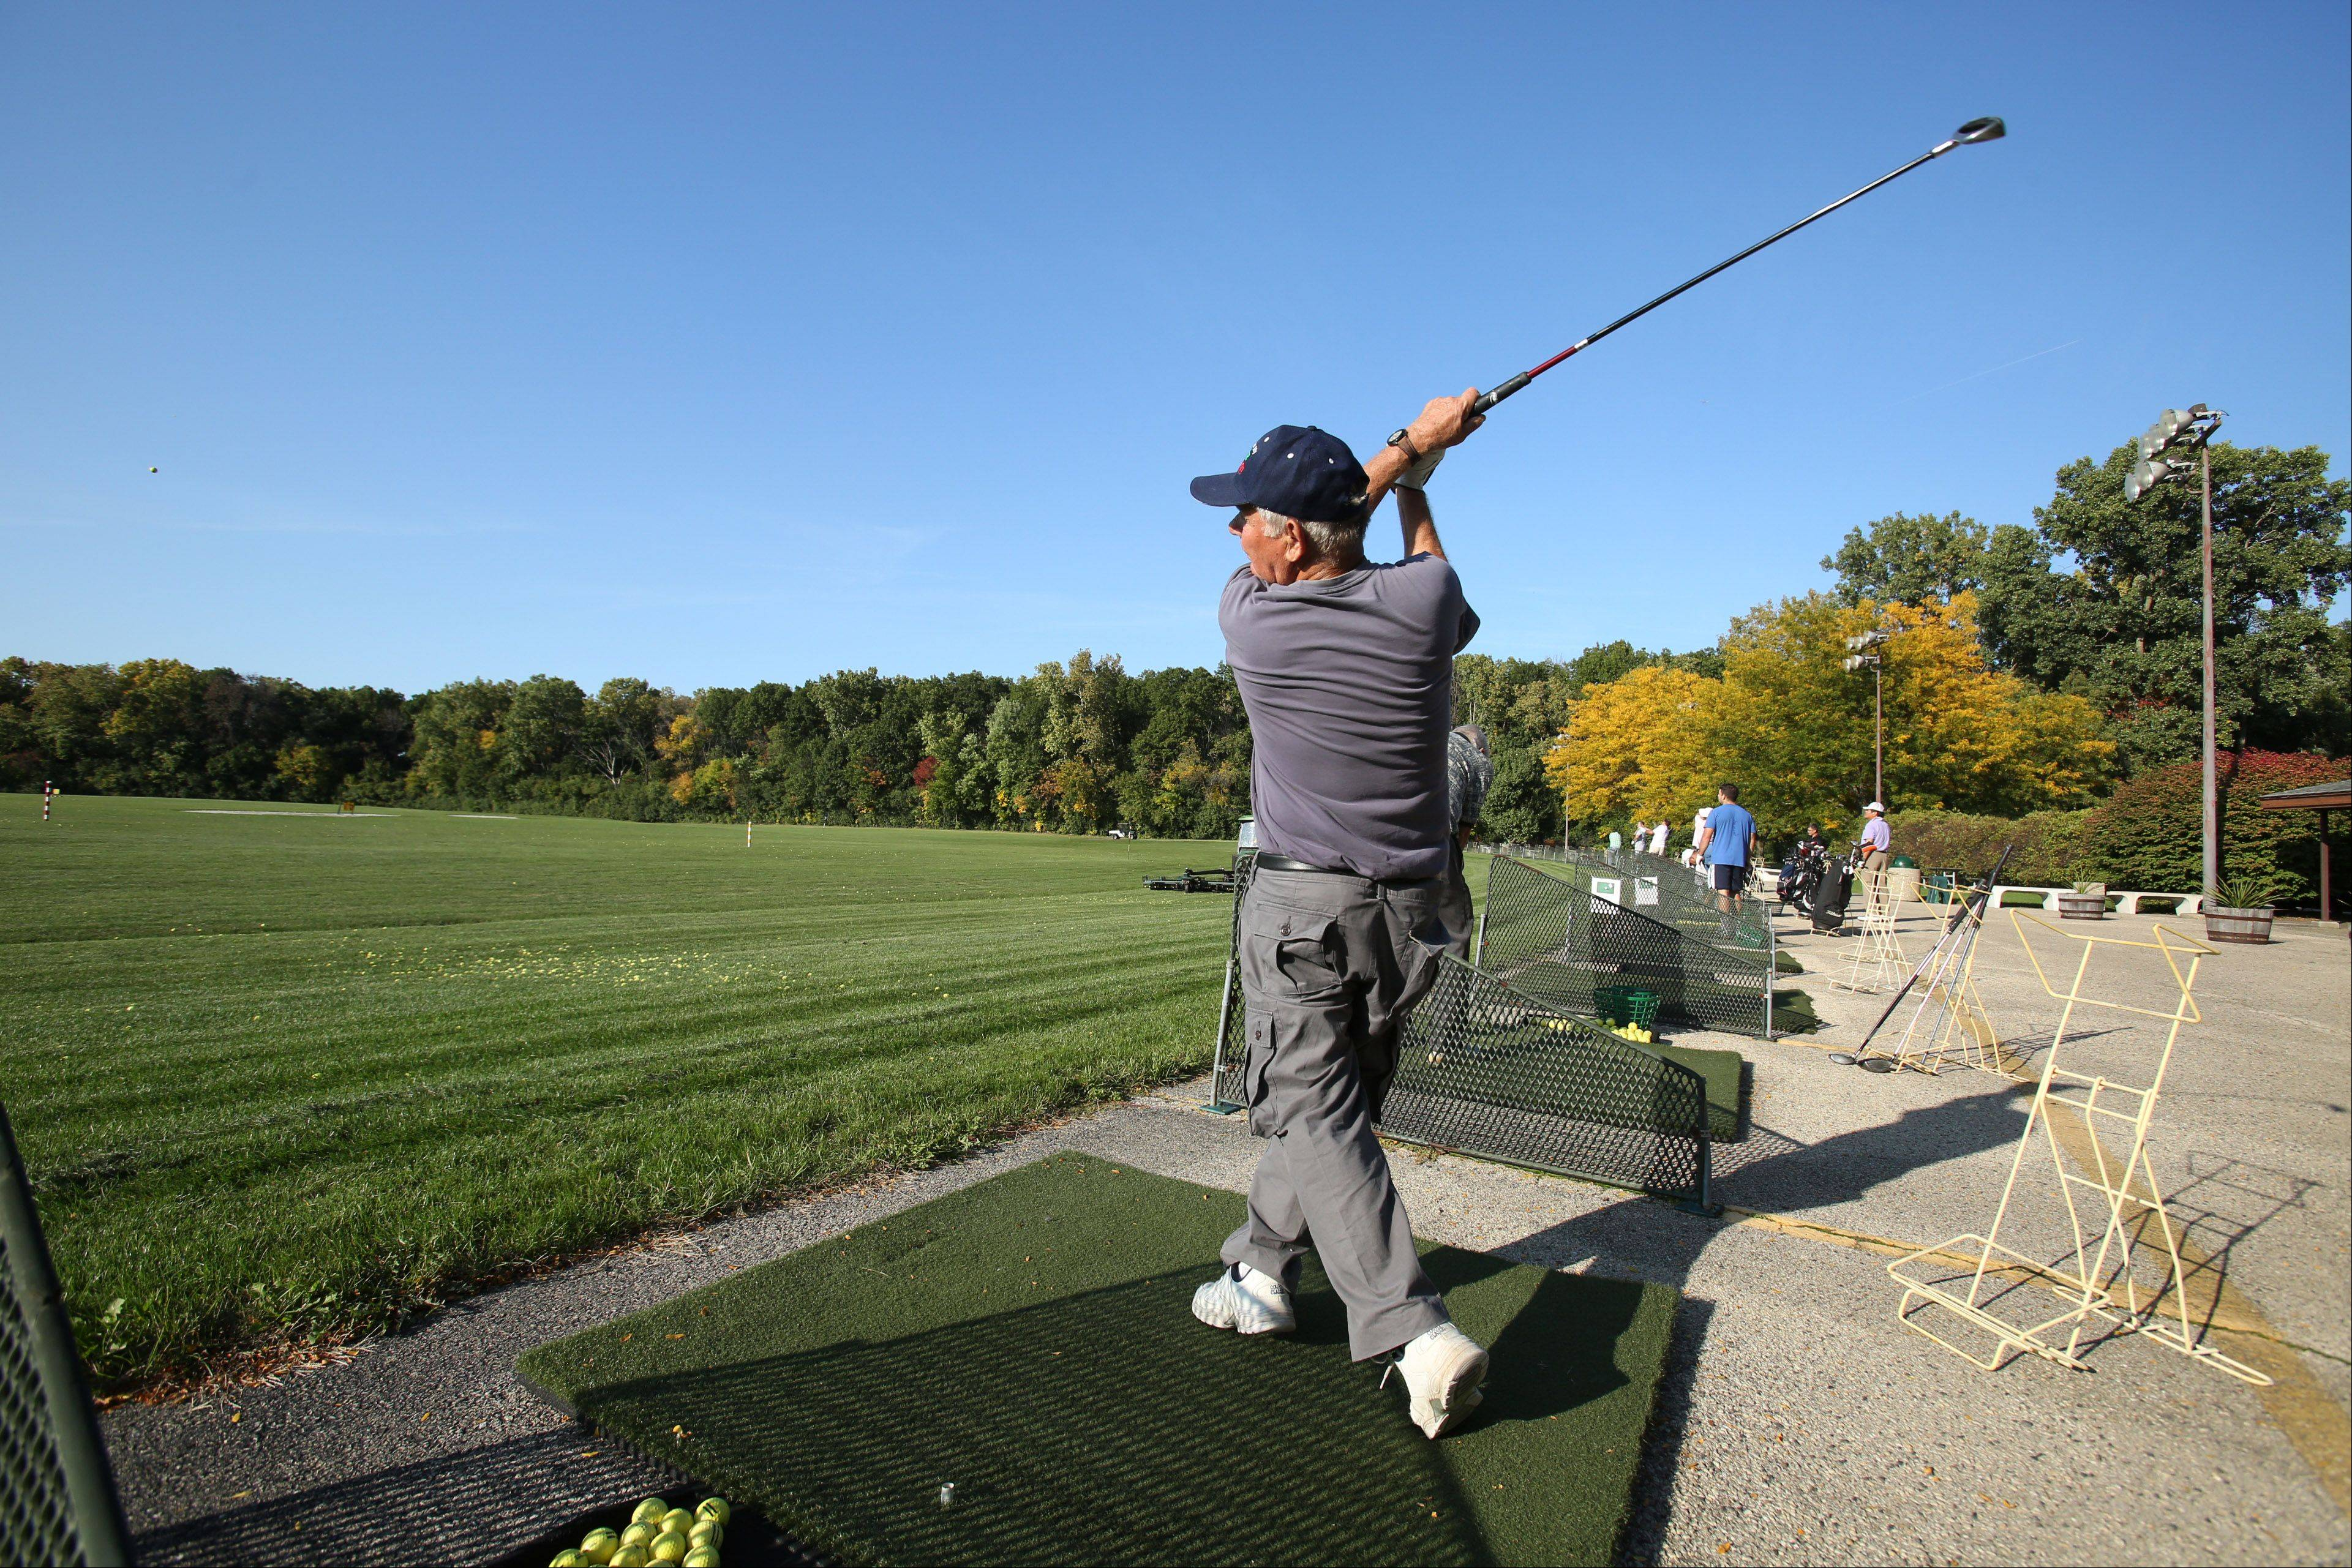 The Harry Semrow Golf Driving Range in Des Plaines is one of two sites being proposed by the U.S. Army Corps of Engineers for a flood storage reservoir, part of a larger flood control plan along the Des Plaines River.